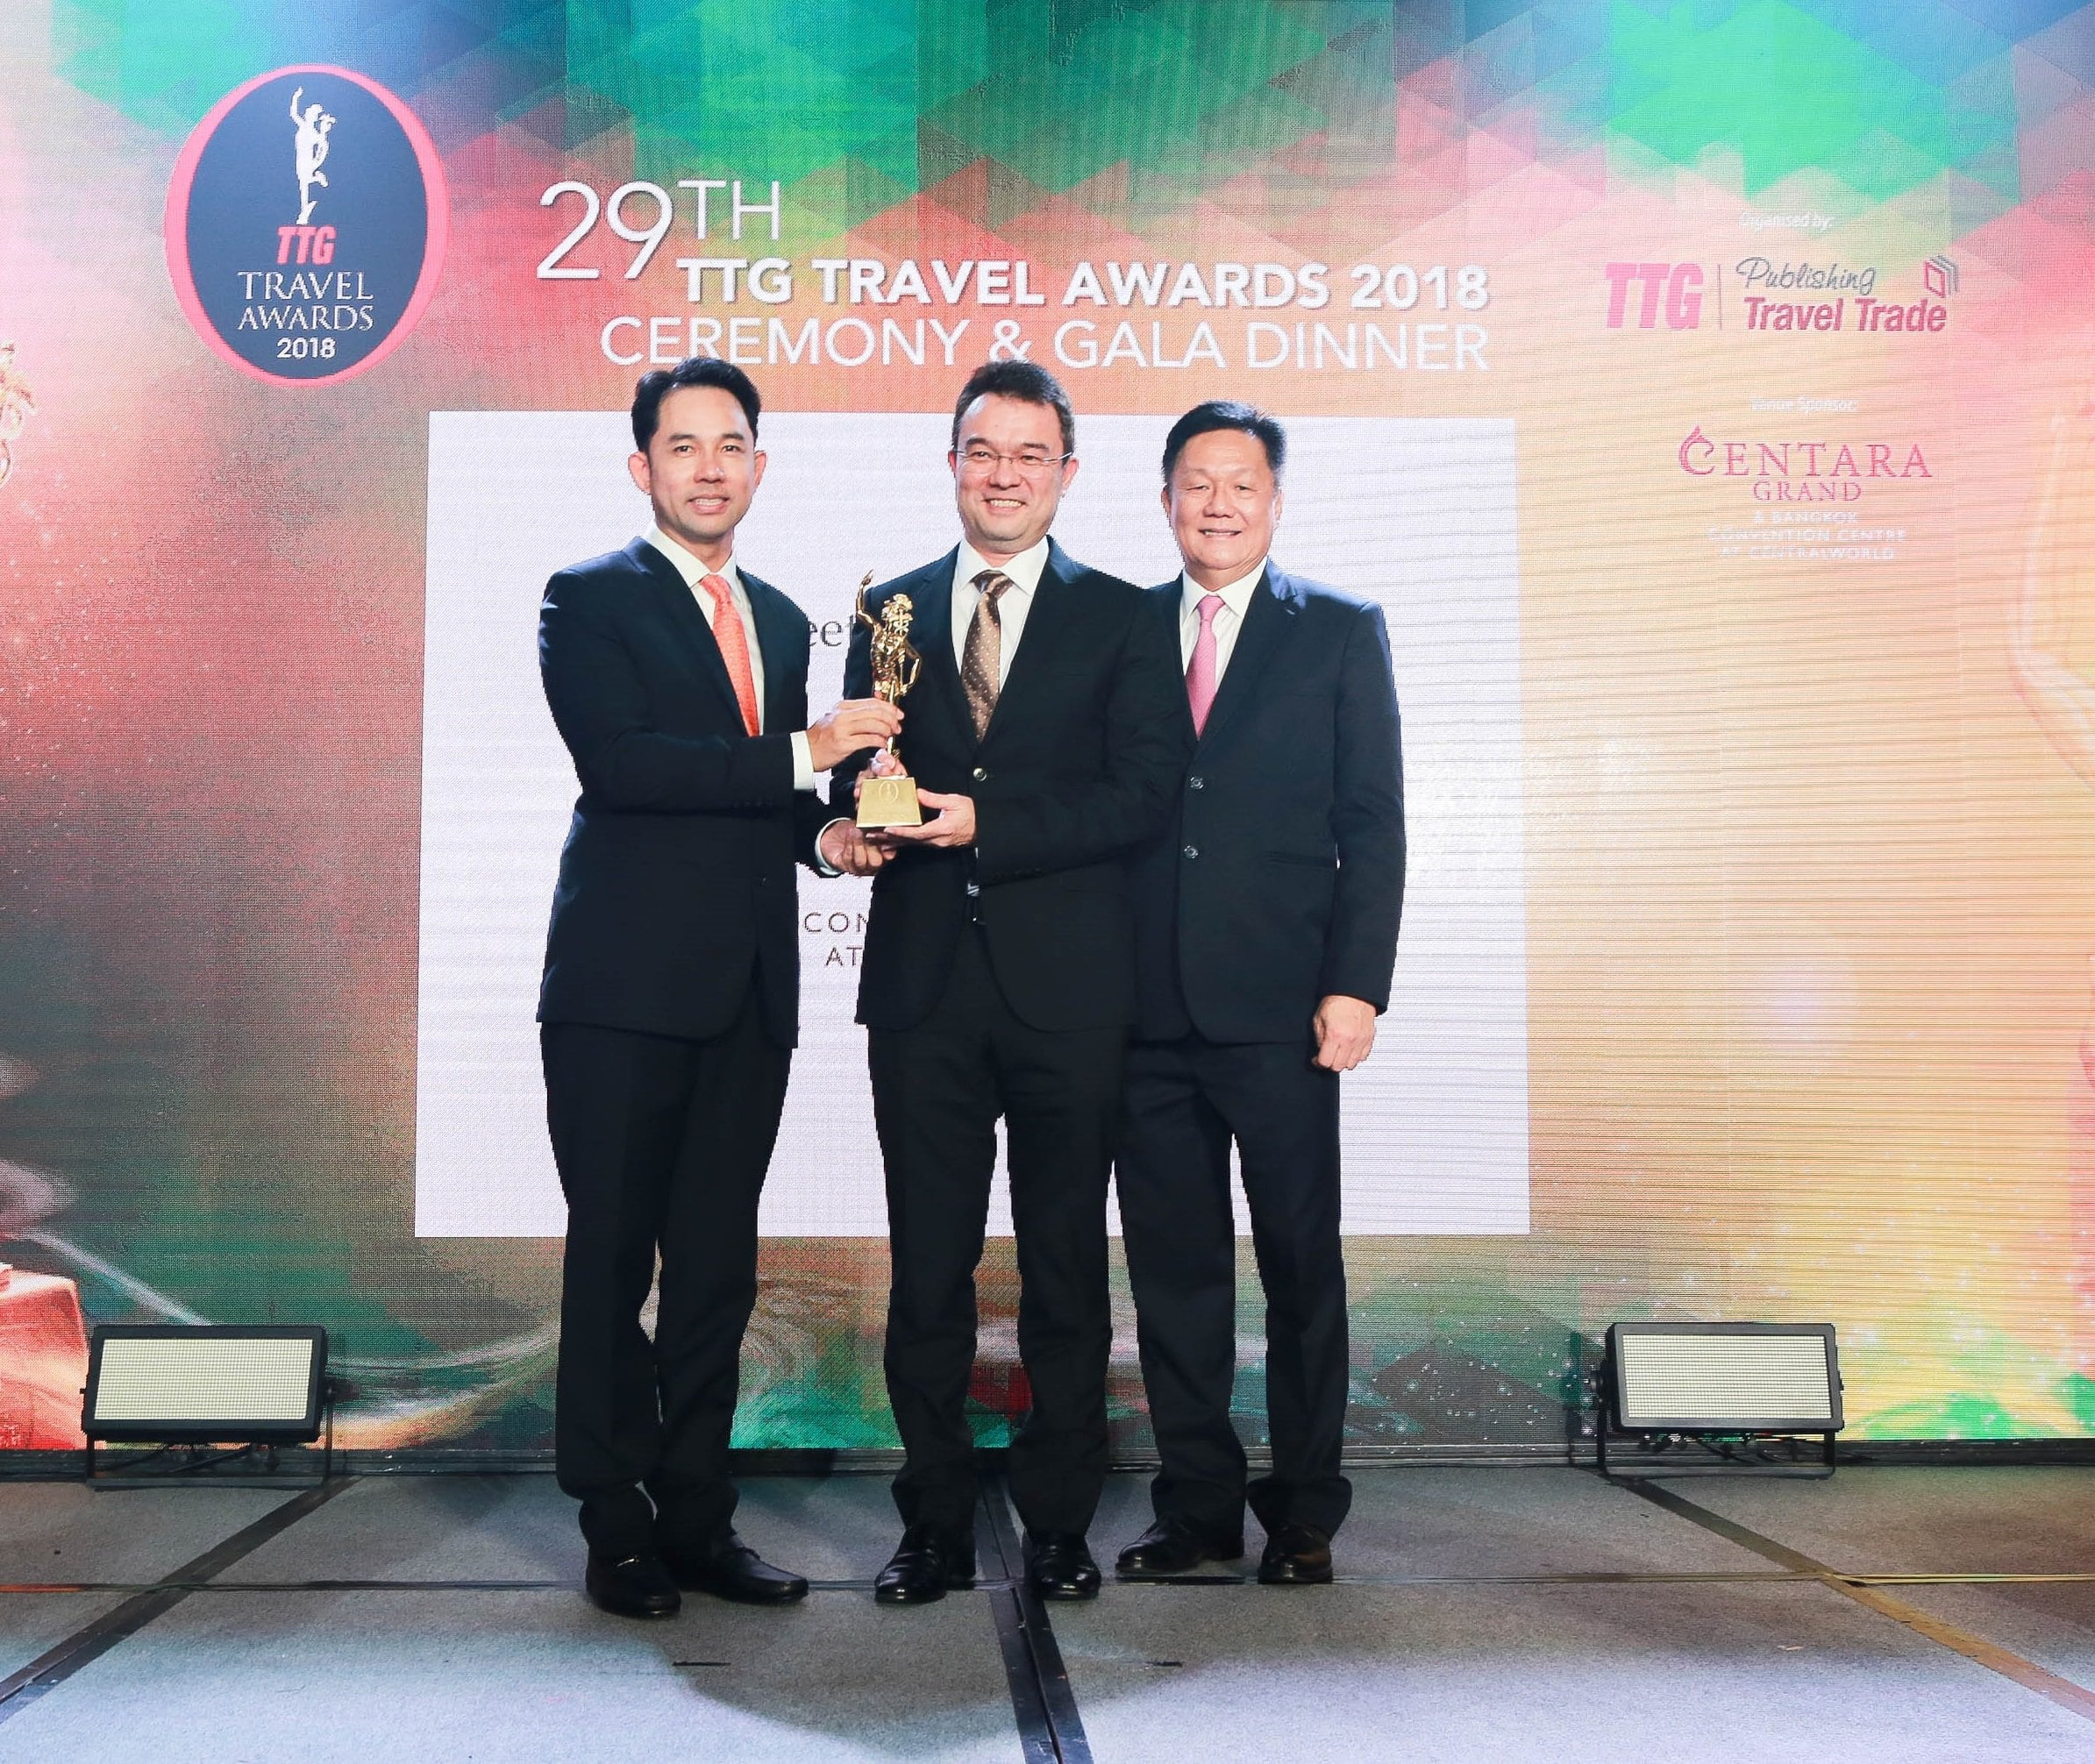 Travel industry recognises Centara